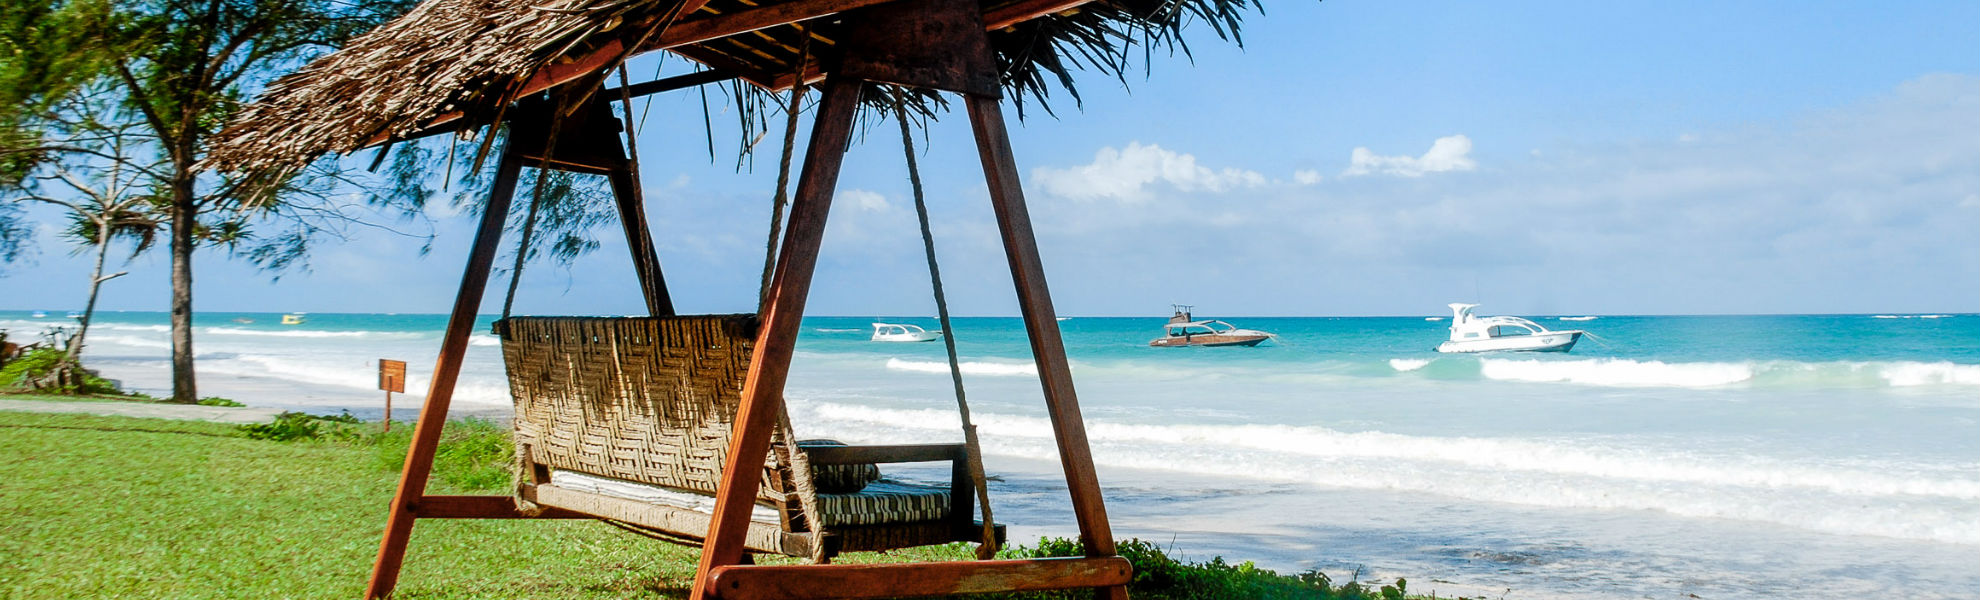 Sonnenliege im Hotel The Sands at Nomad am Diani Beach